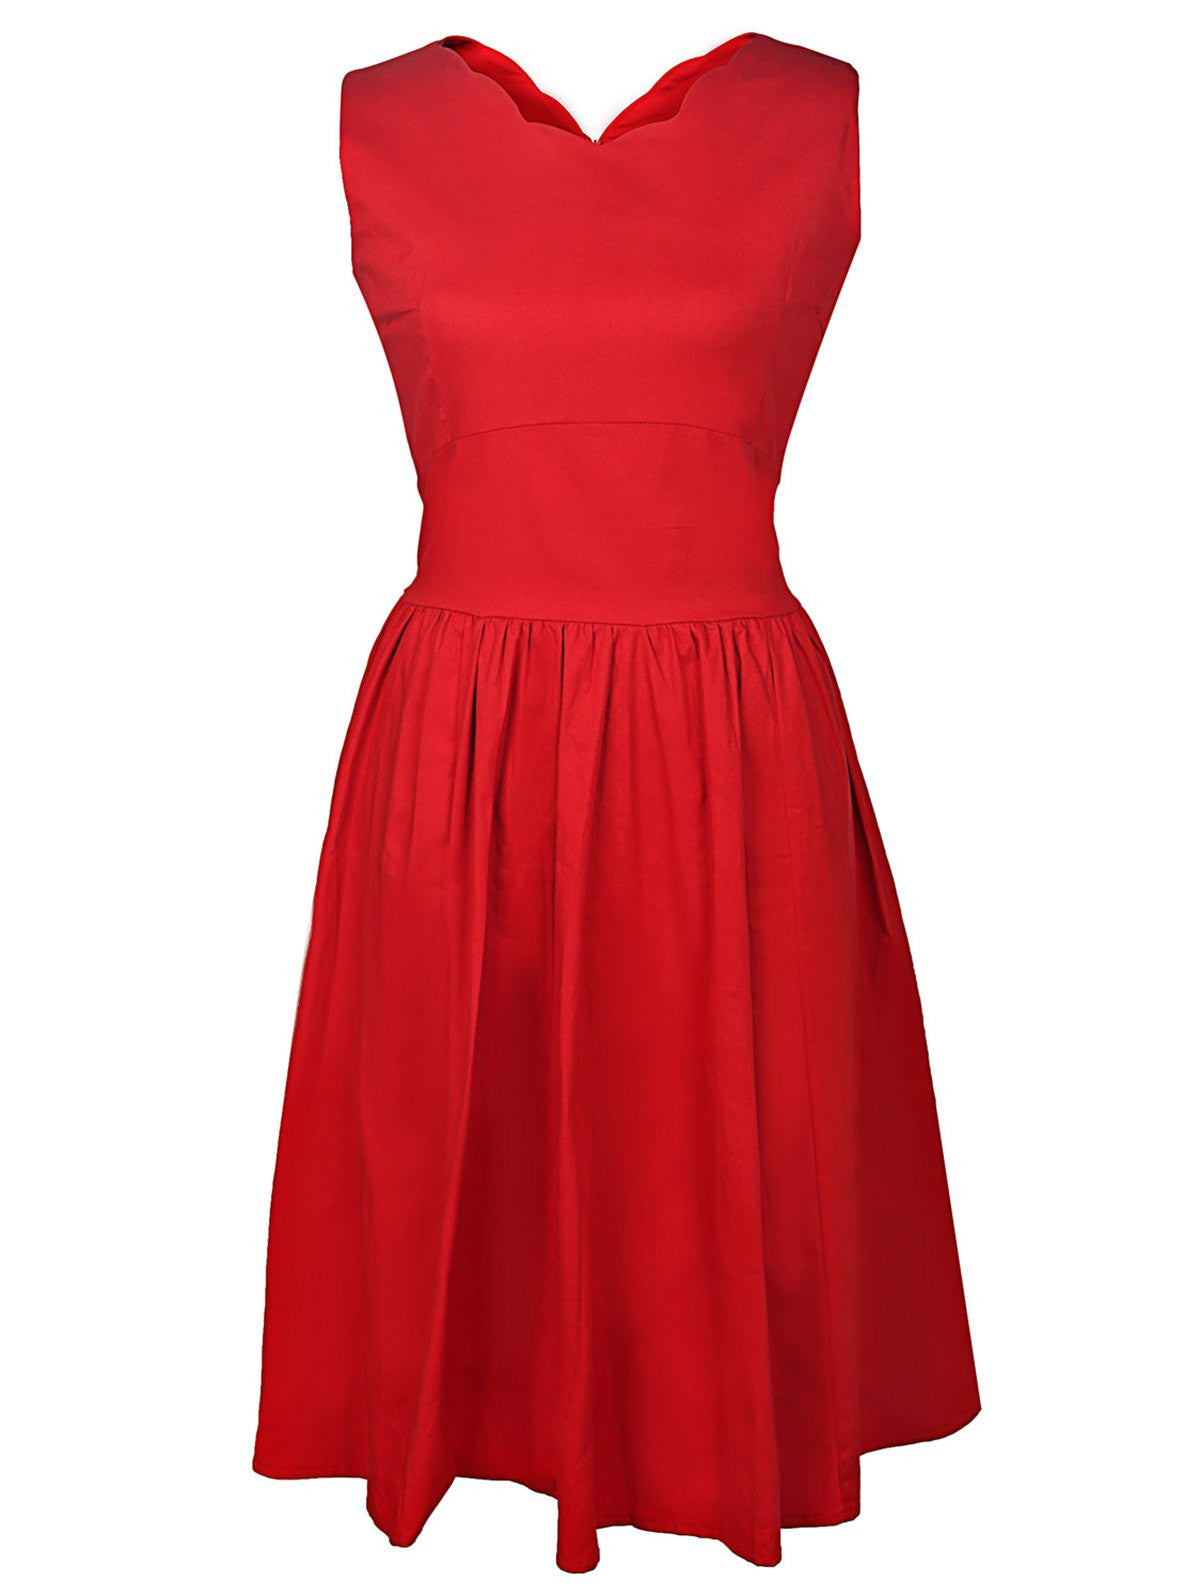 Vintage Style V-Neck Sleeveless Solid Color Women's Dress LAVELIQ